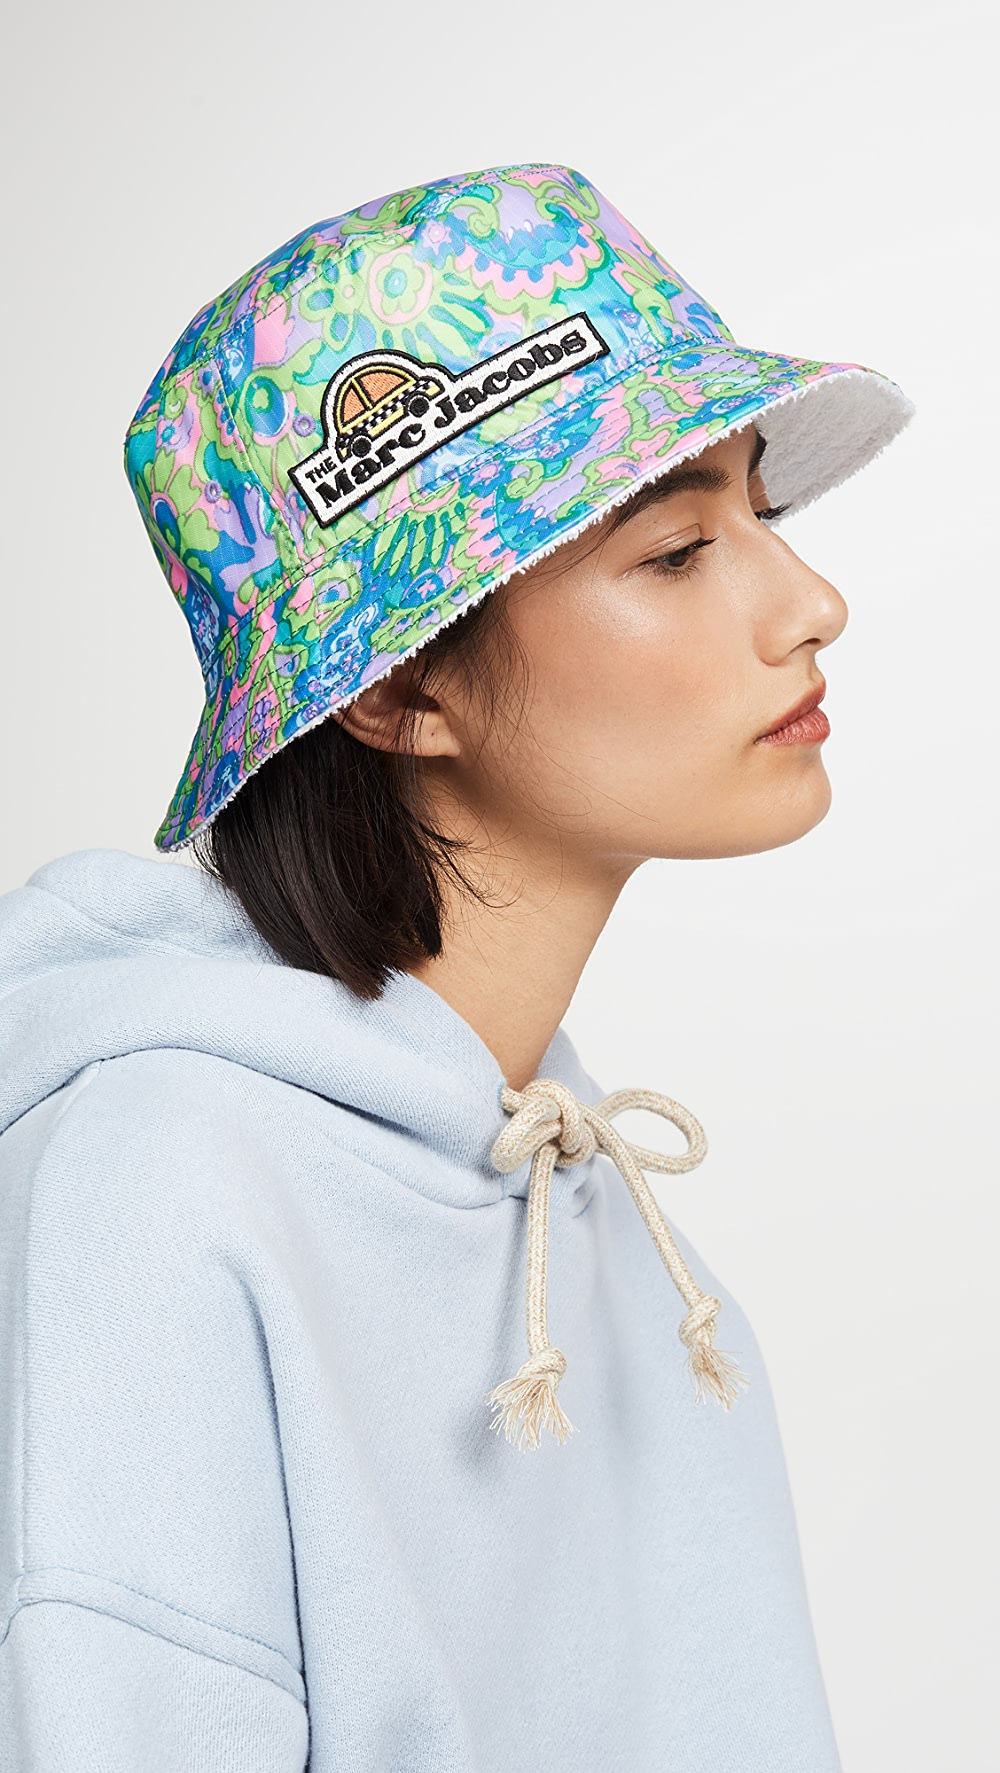 Cooperative The Marc Jacobs - The Bucket Hat Clear-Cut Texture